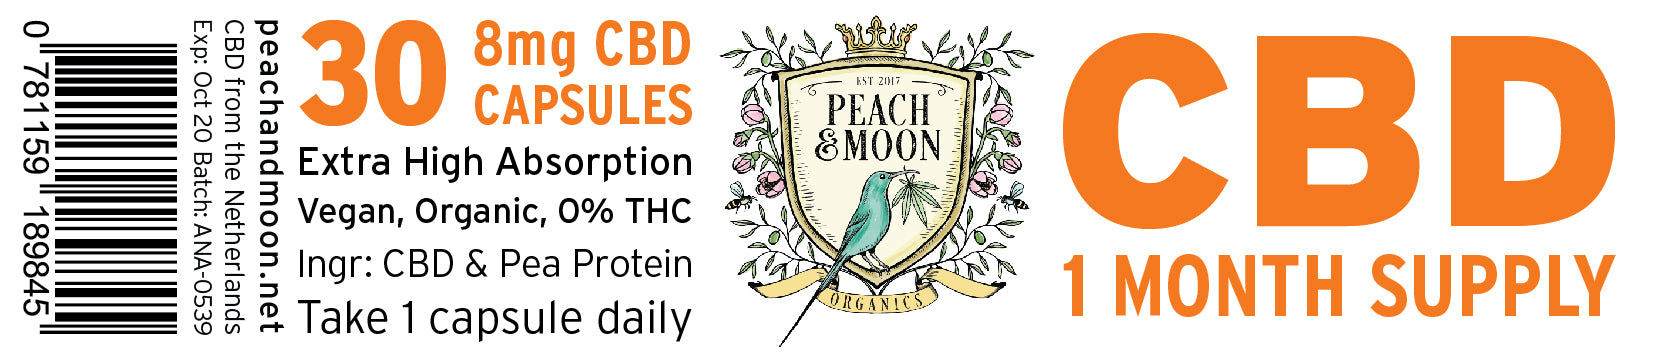 Distribution: CBD Capsules (30) - Peach & Moon Organics